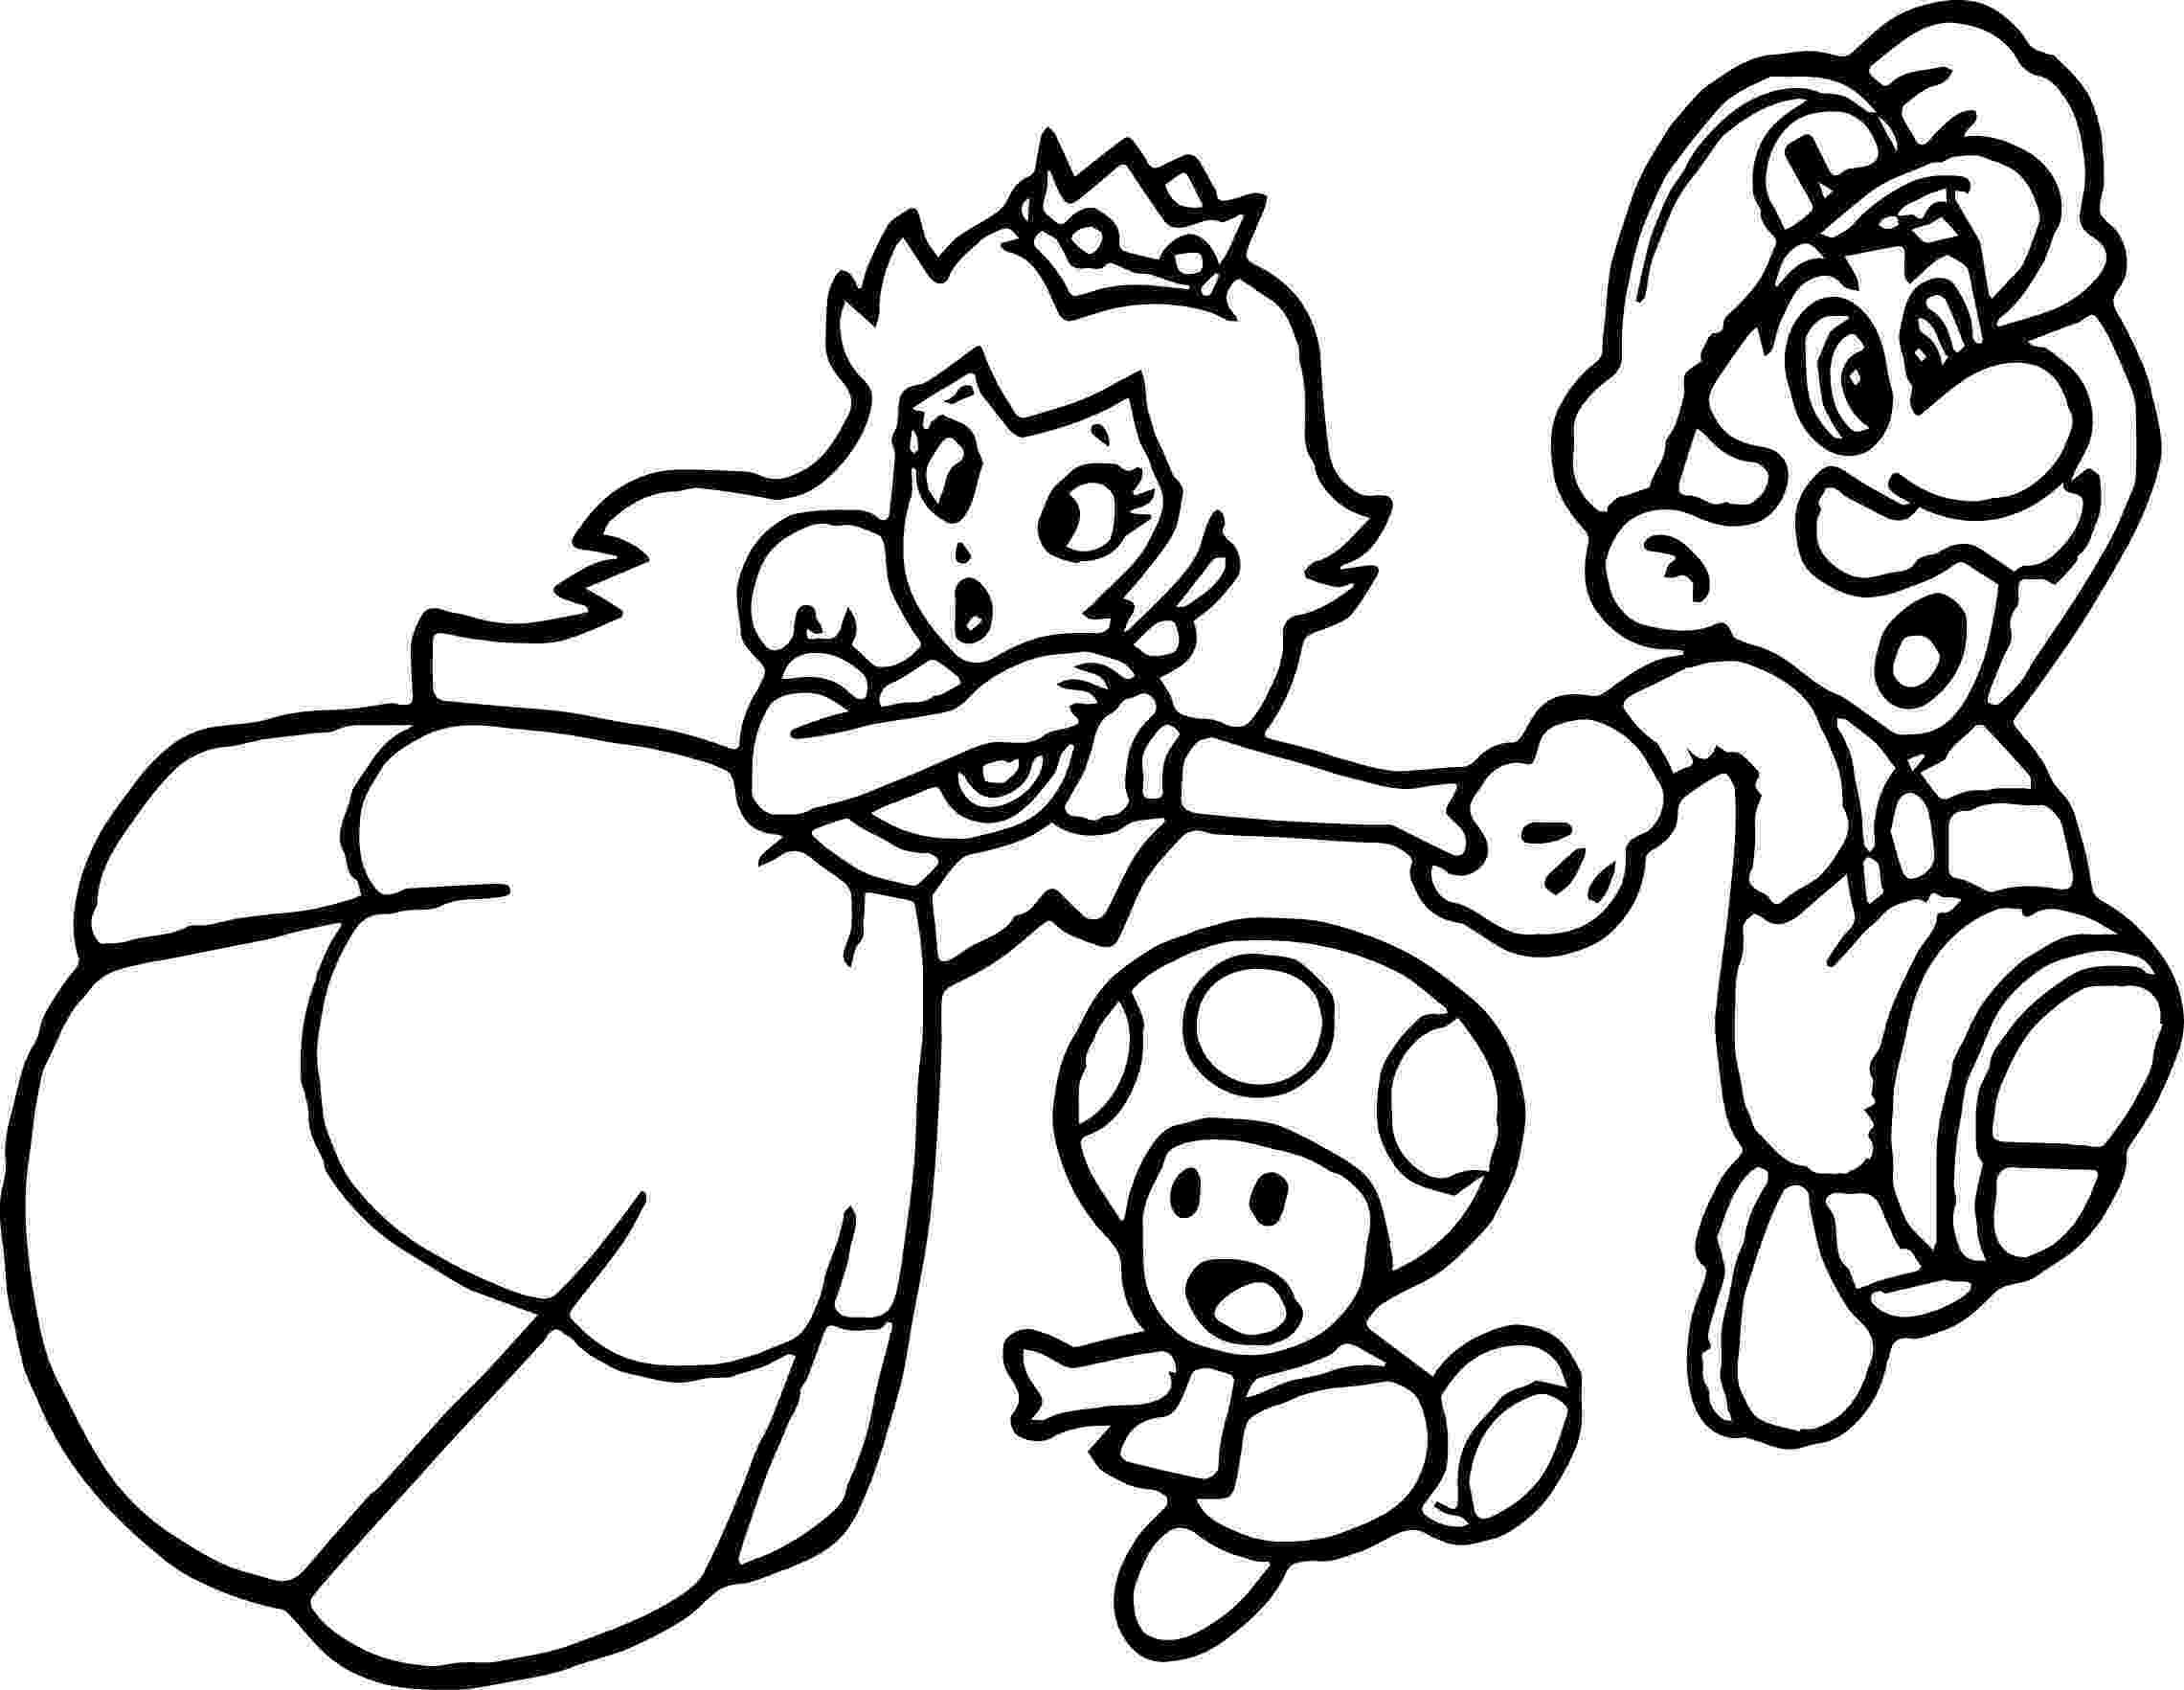 mario princesses celebrity gossips and images mario and princess peach mario princesses